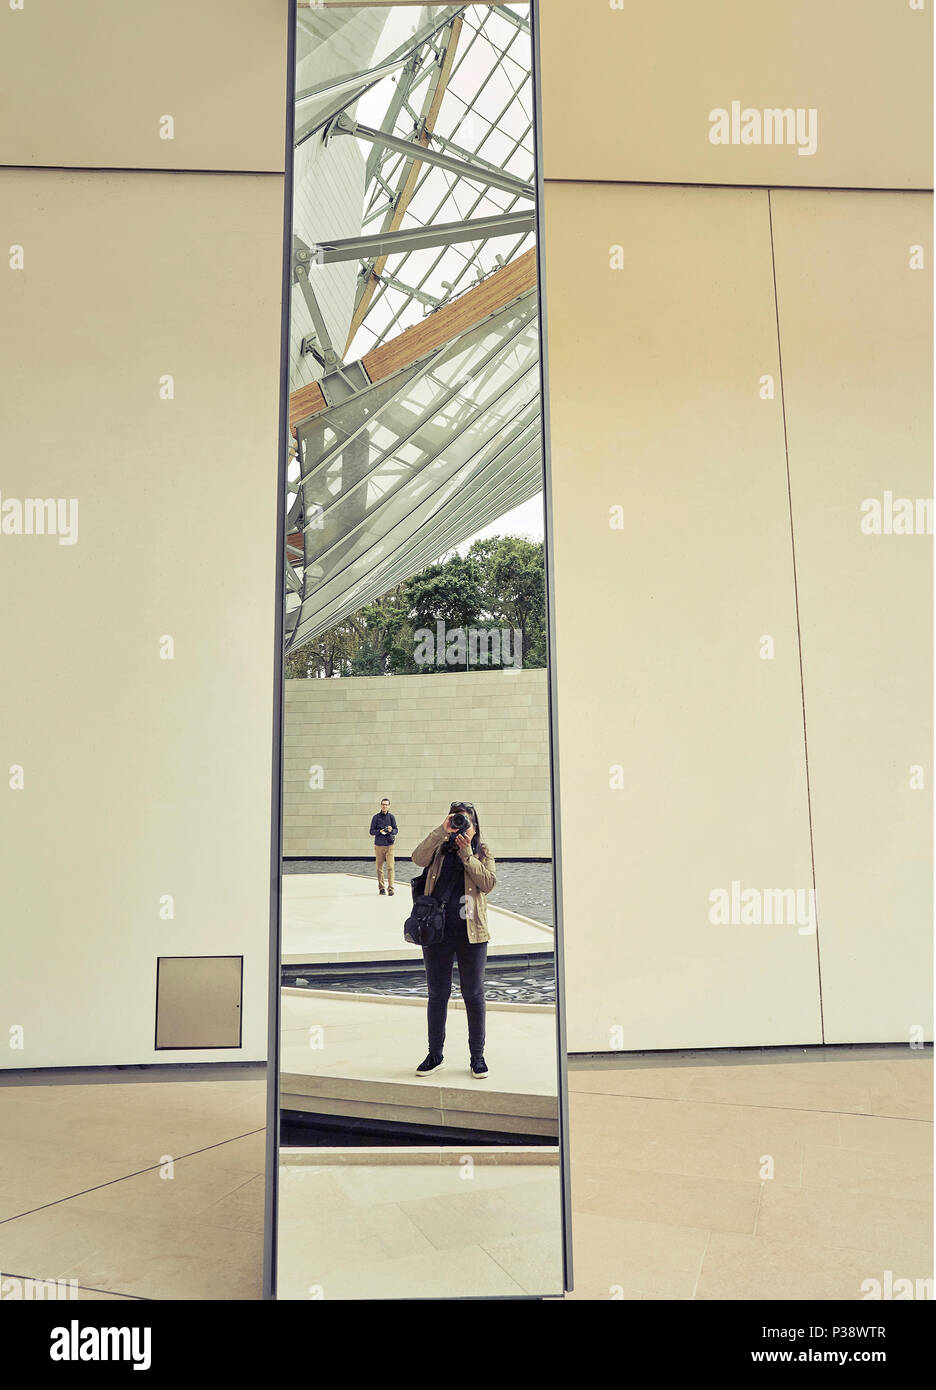 Self portrait at Louis Vuitton foundation - Stock Image